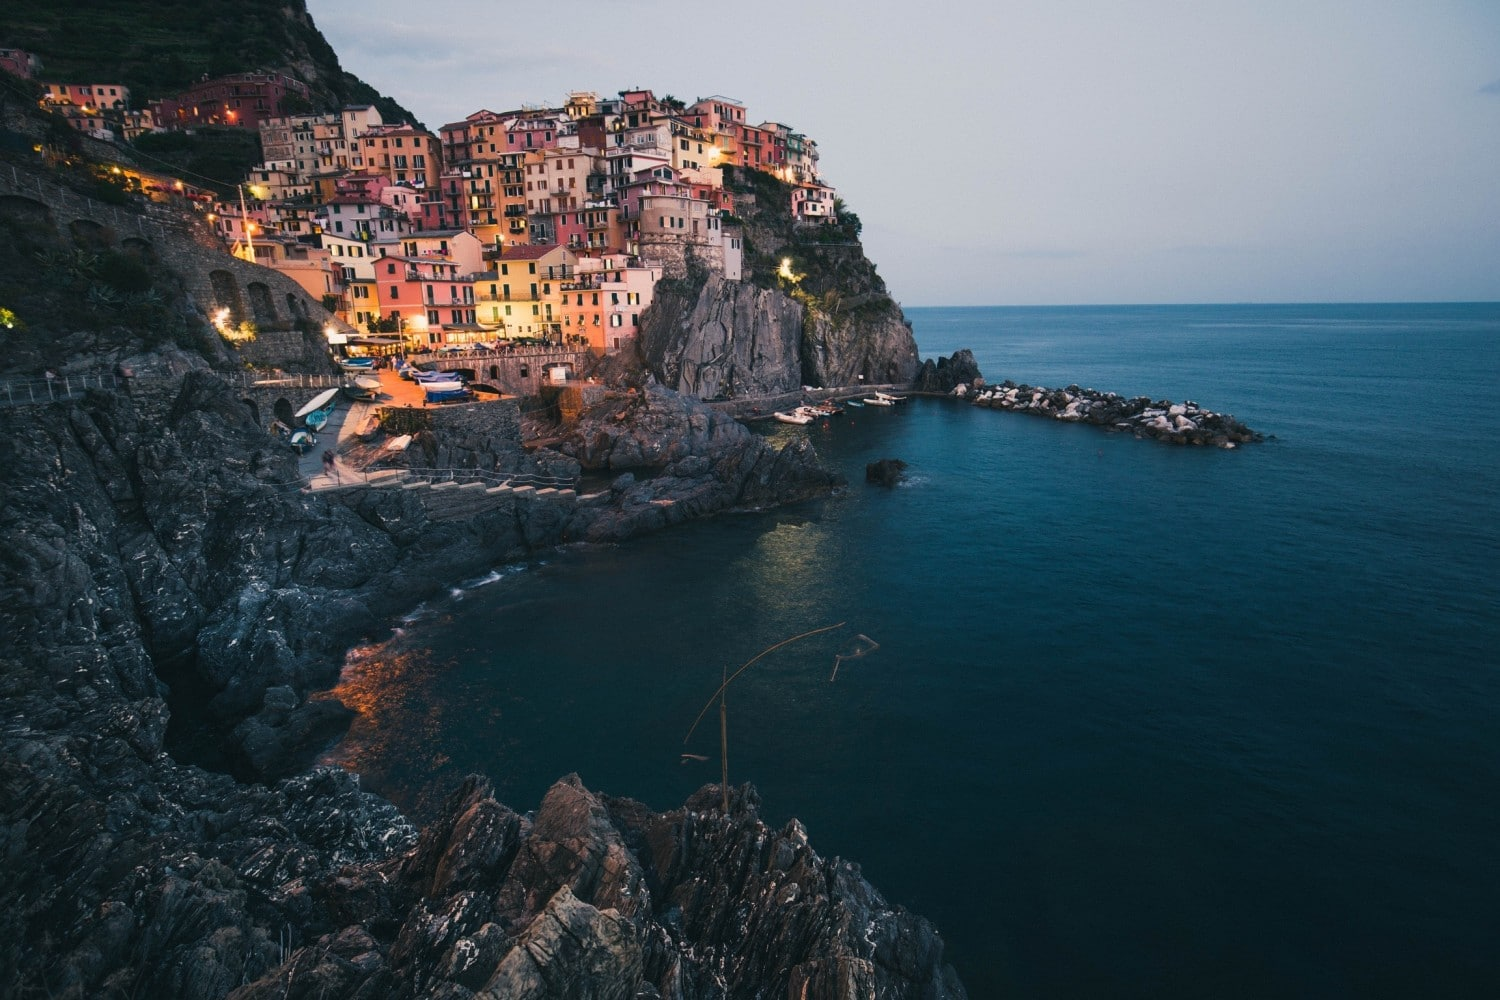 Hiking the blue trail along the Cinque Terre in Italy. One of Europe's best hikes.